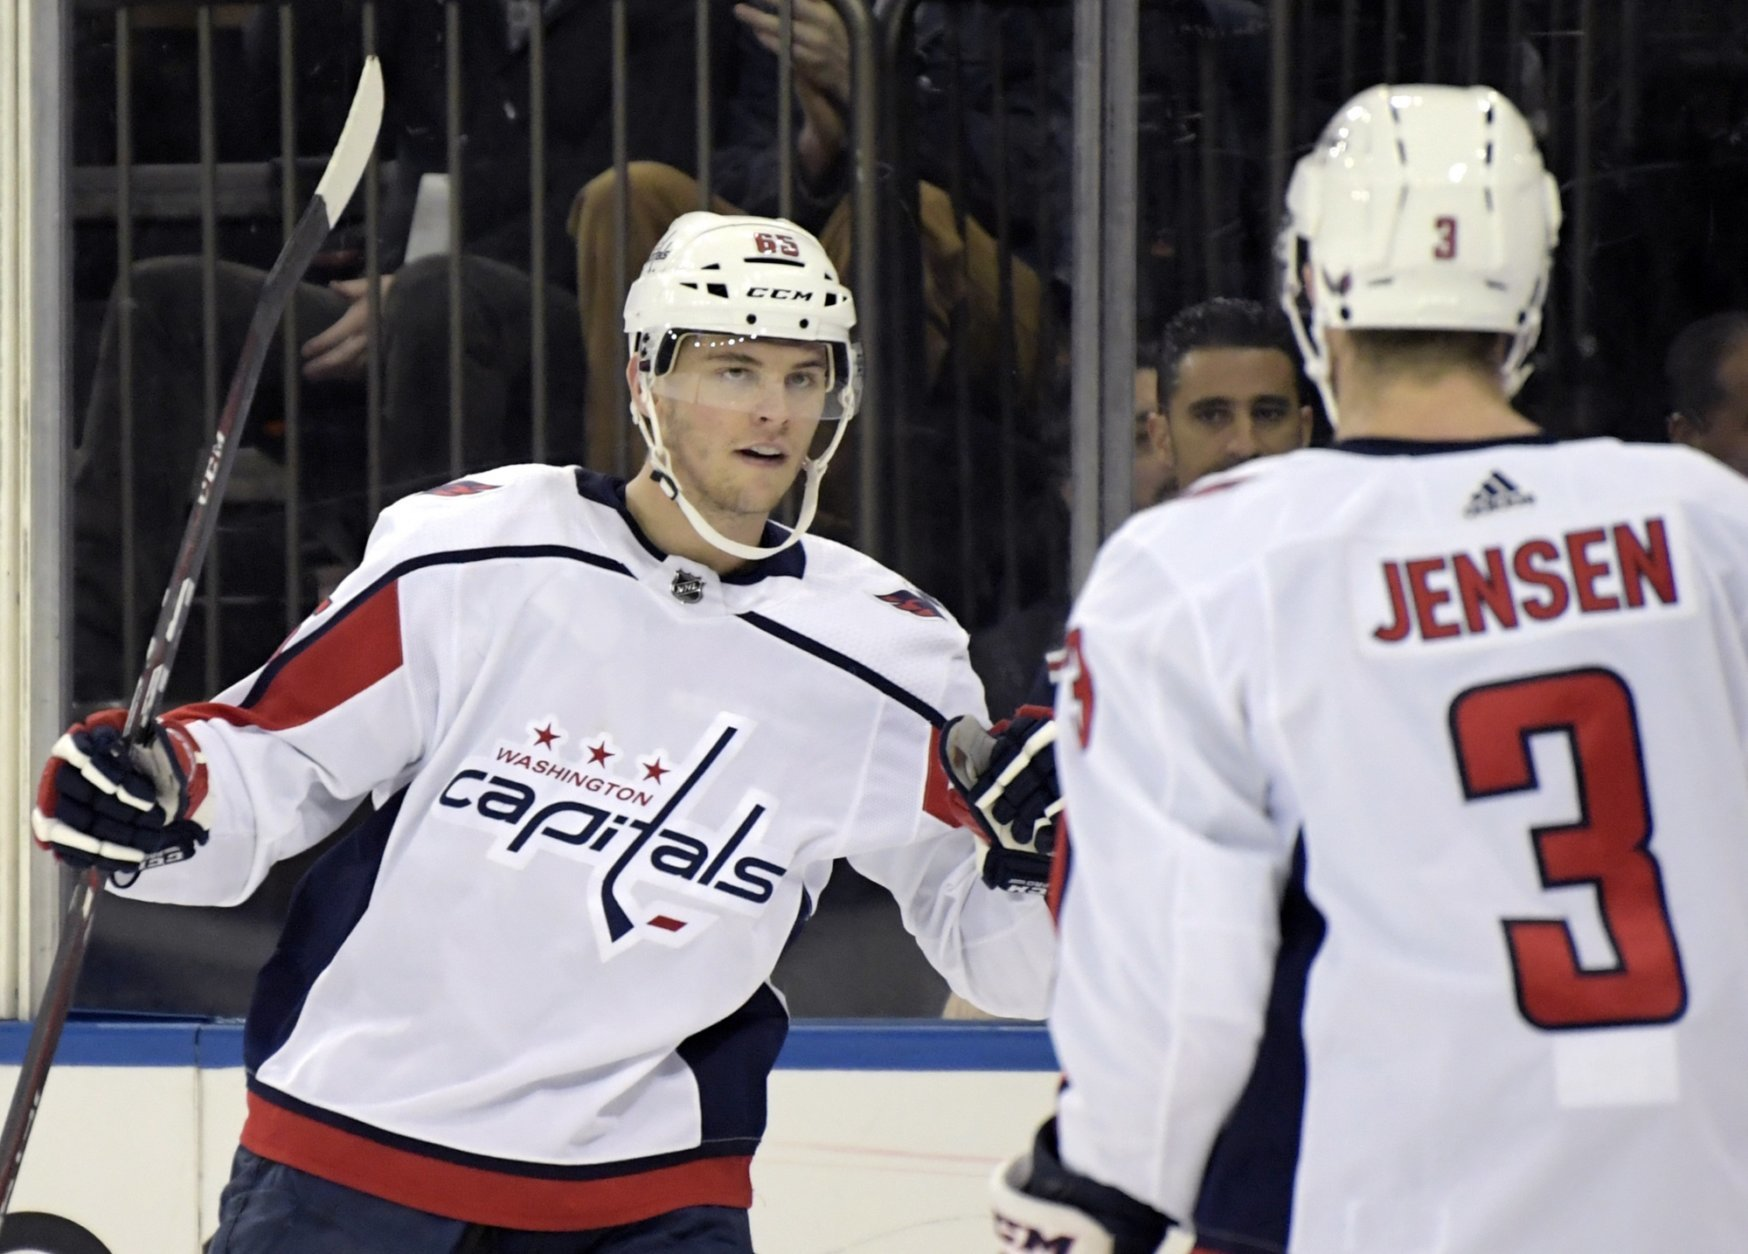 Washington Capitals left wing Andre Burakovsky (65) celebrates his goal with Nick Jensen (3) during the first period of an NHL hockey game against the New York Rangers, Sunday, March 3, 2019, at Madison Square Garden in New York. (AP Photo/ Bill Kostroun)